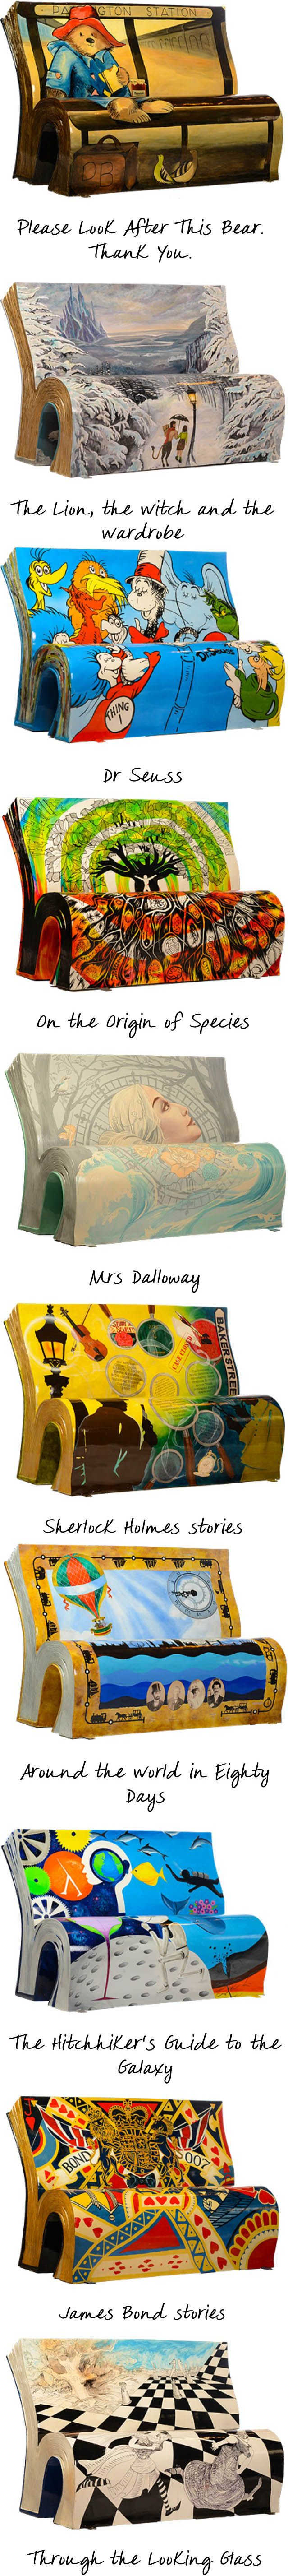 These are 10 of the 50 literary benches that the National Literary Trust and Wild in Art have put up all over London to celebrate reading.